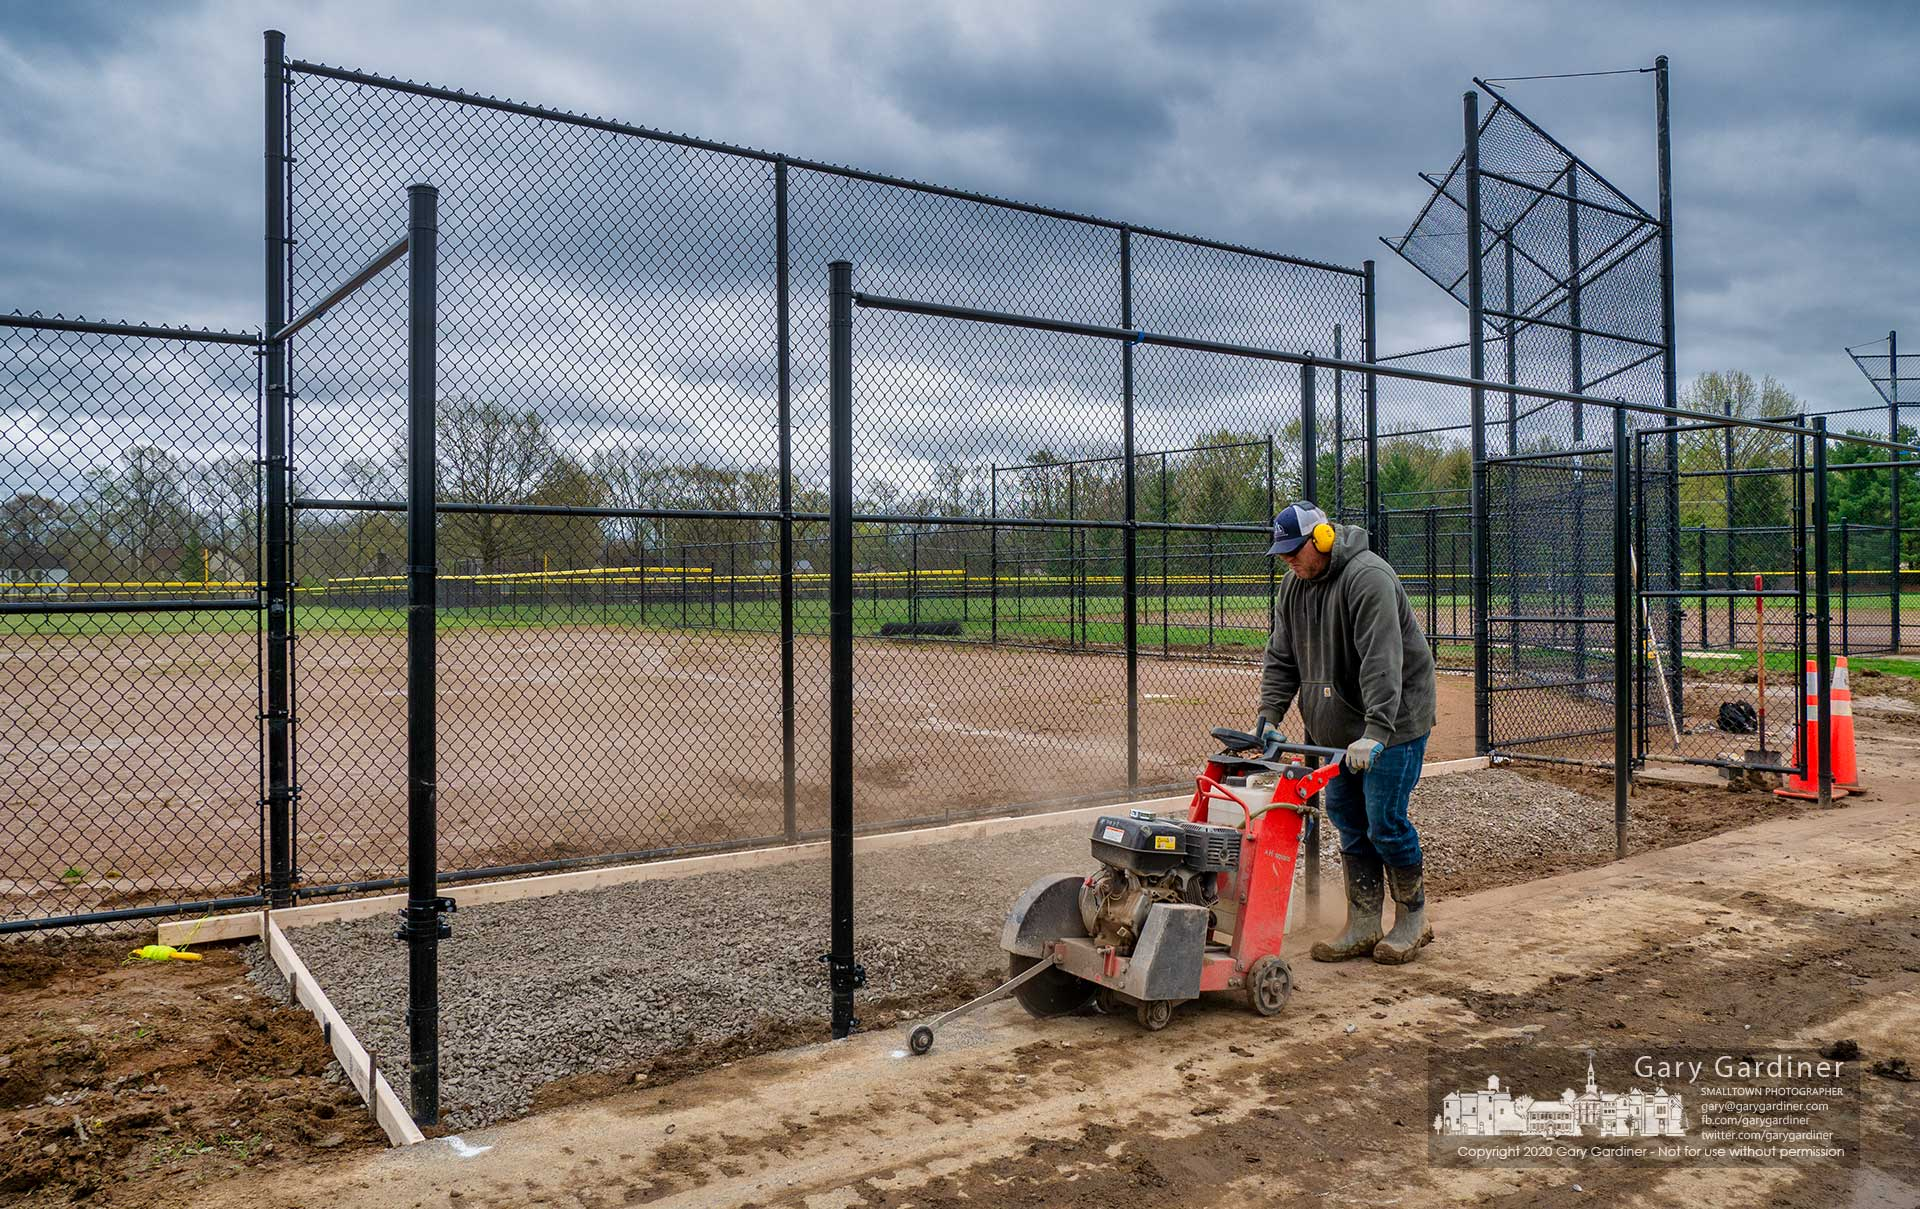 Workers continue to upgrade the baseball fields at Highlands with new fencing and changes to the dugout which will have concrete pads once the season is allowed to begin. My Final Photo for April 30, 2020.